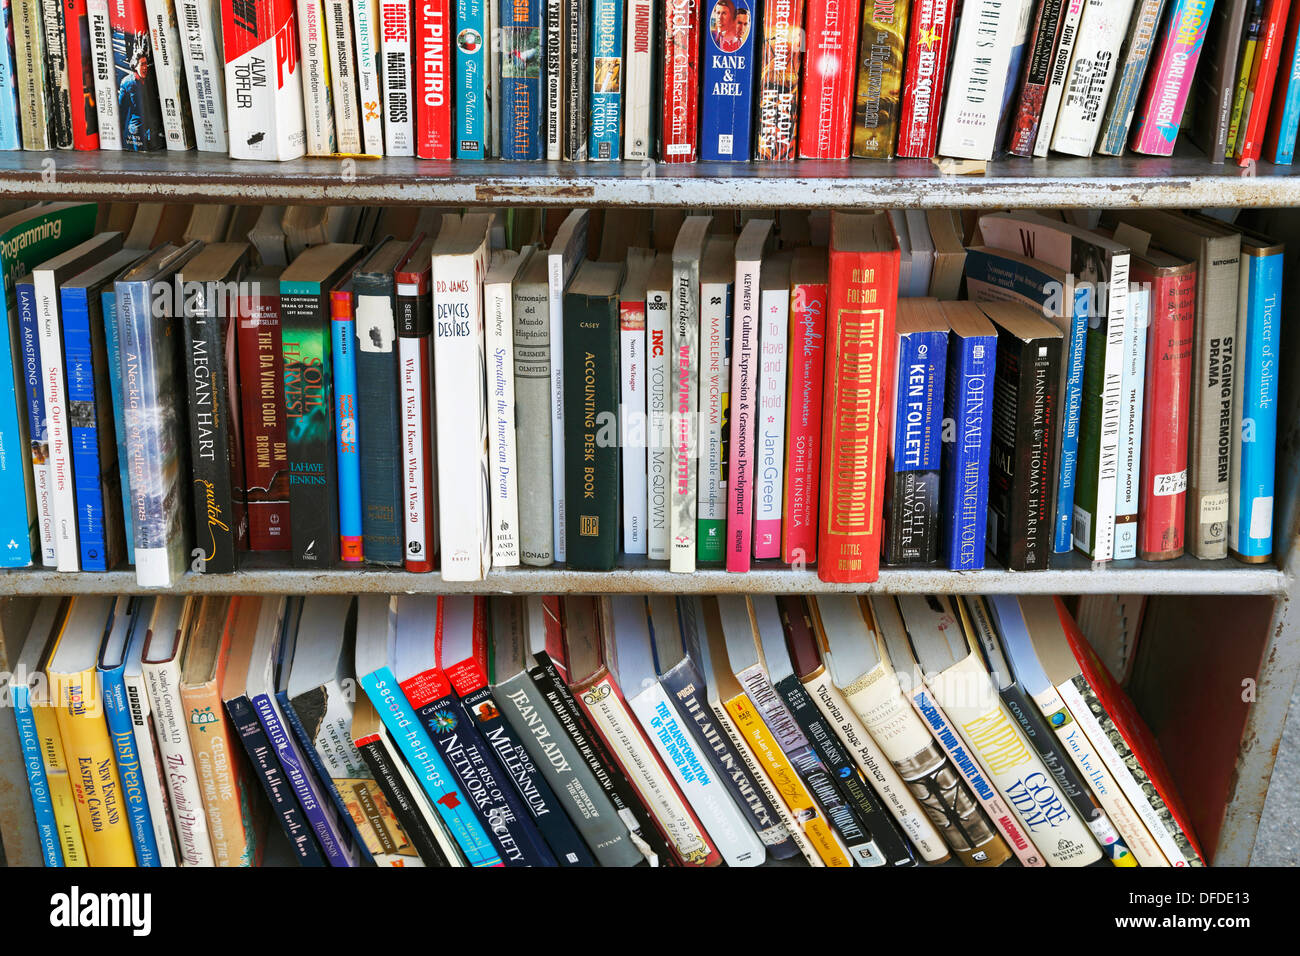 Used books in a bookshelf outside a used book store. - Stock Image